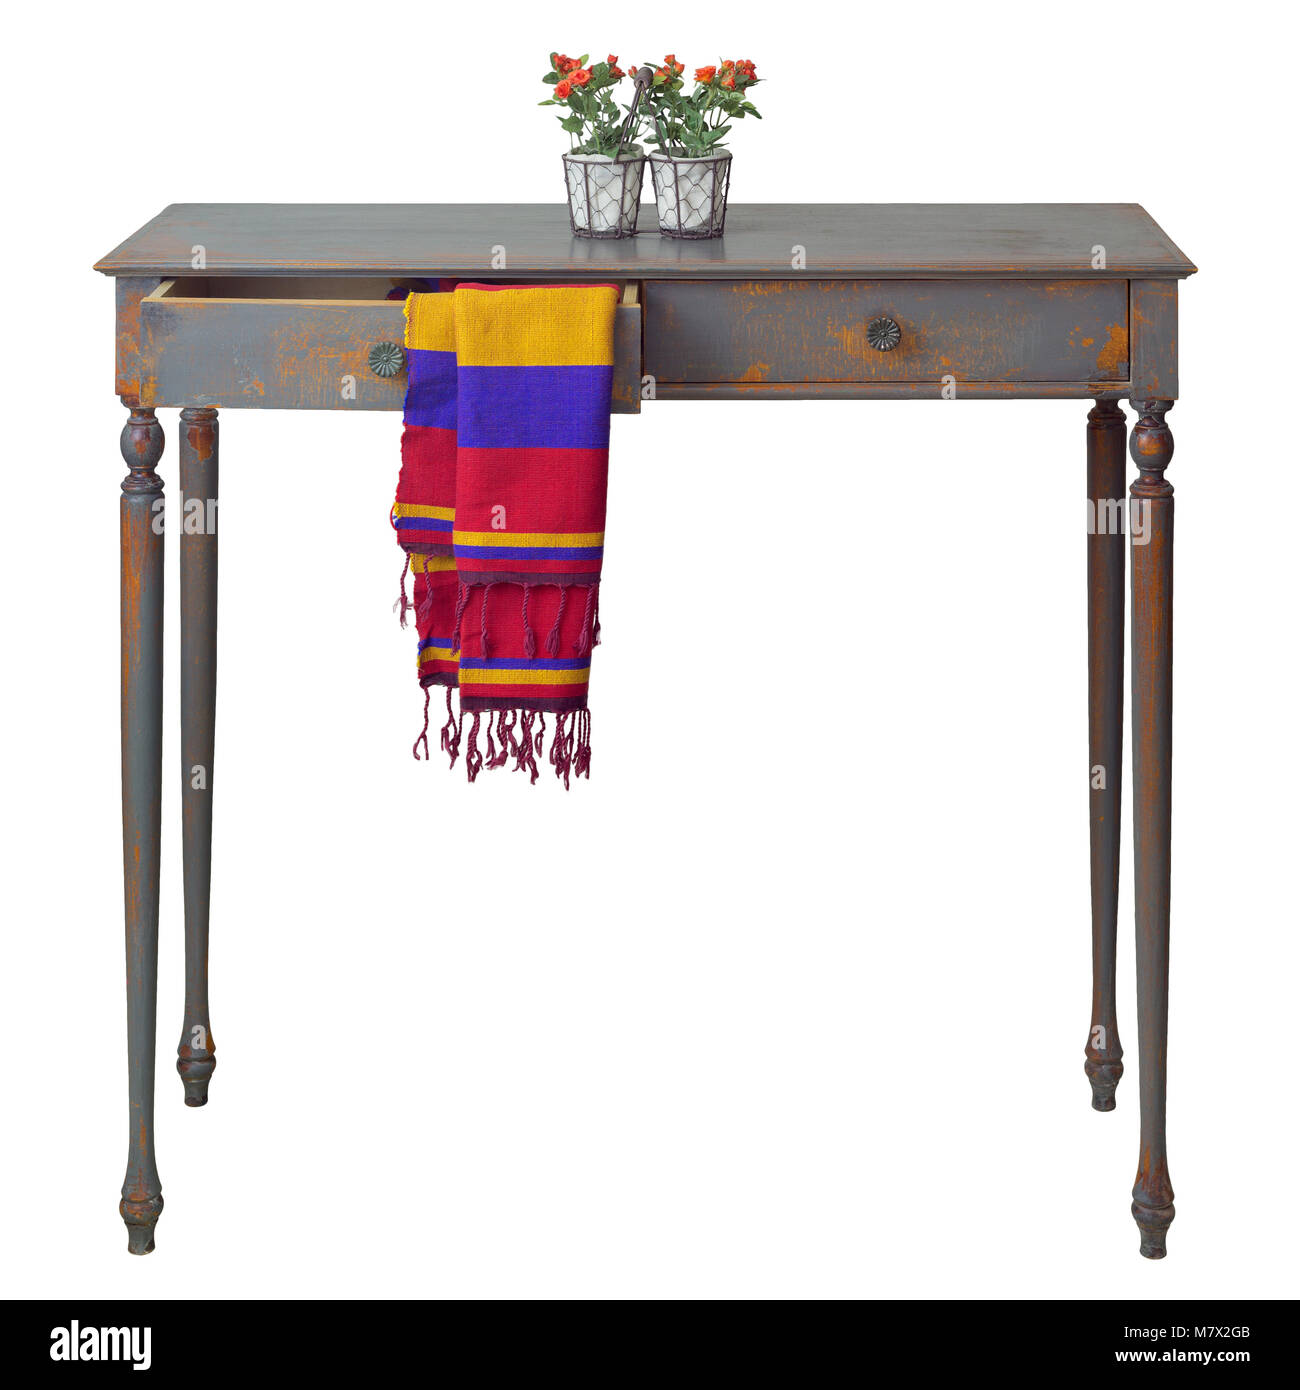 Vintage wooden table with two drawers painted in grey and orange with colorful scarf hanging down from one of the - Stock Image